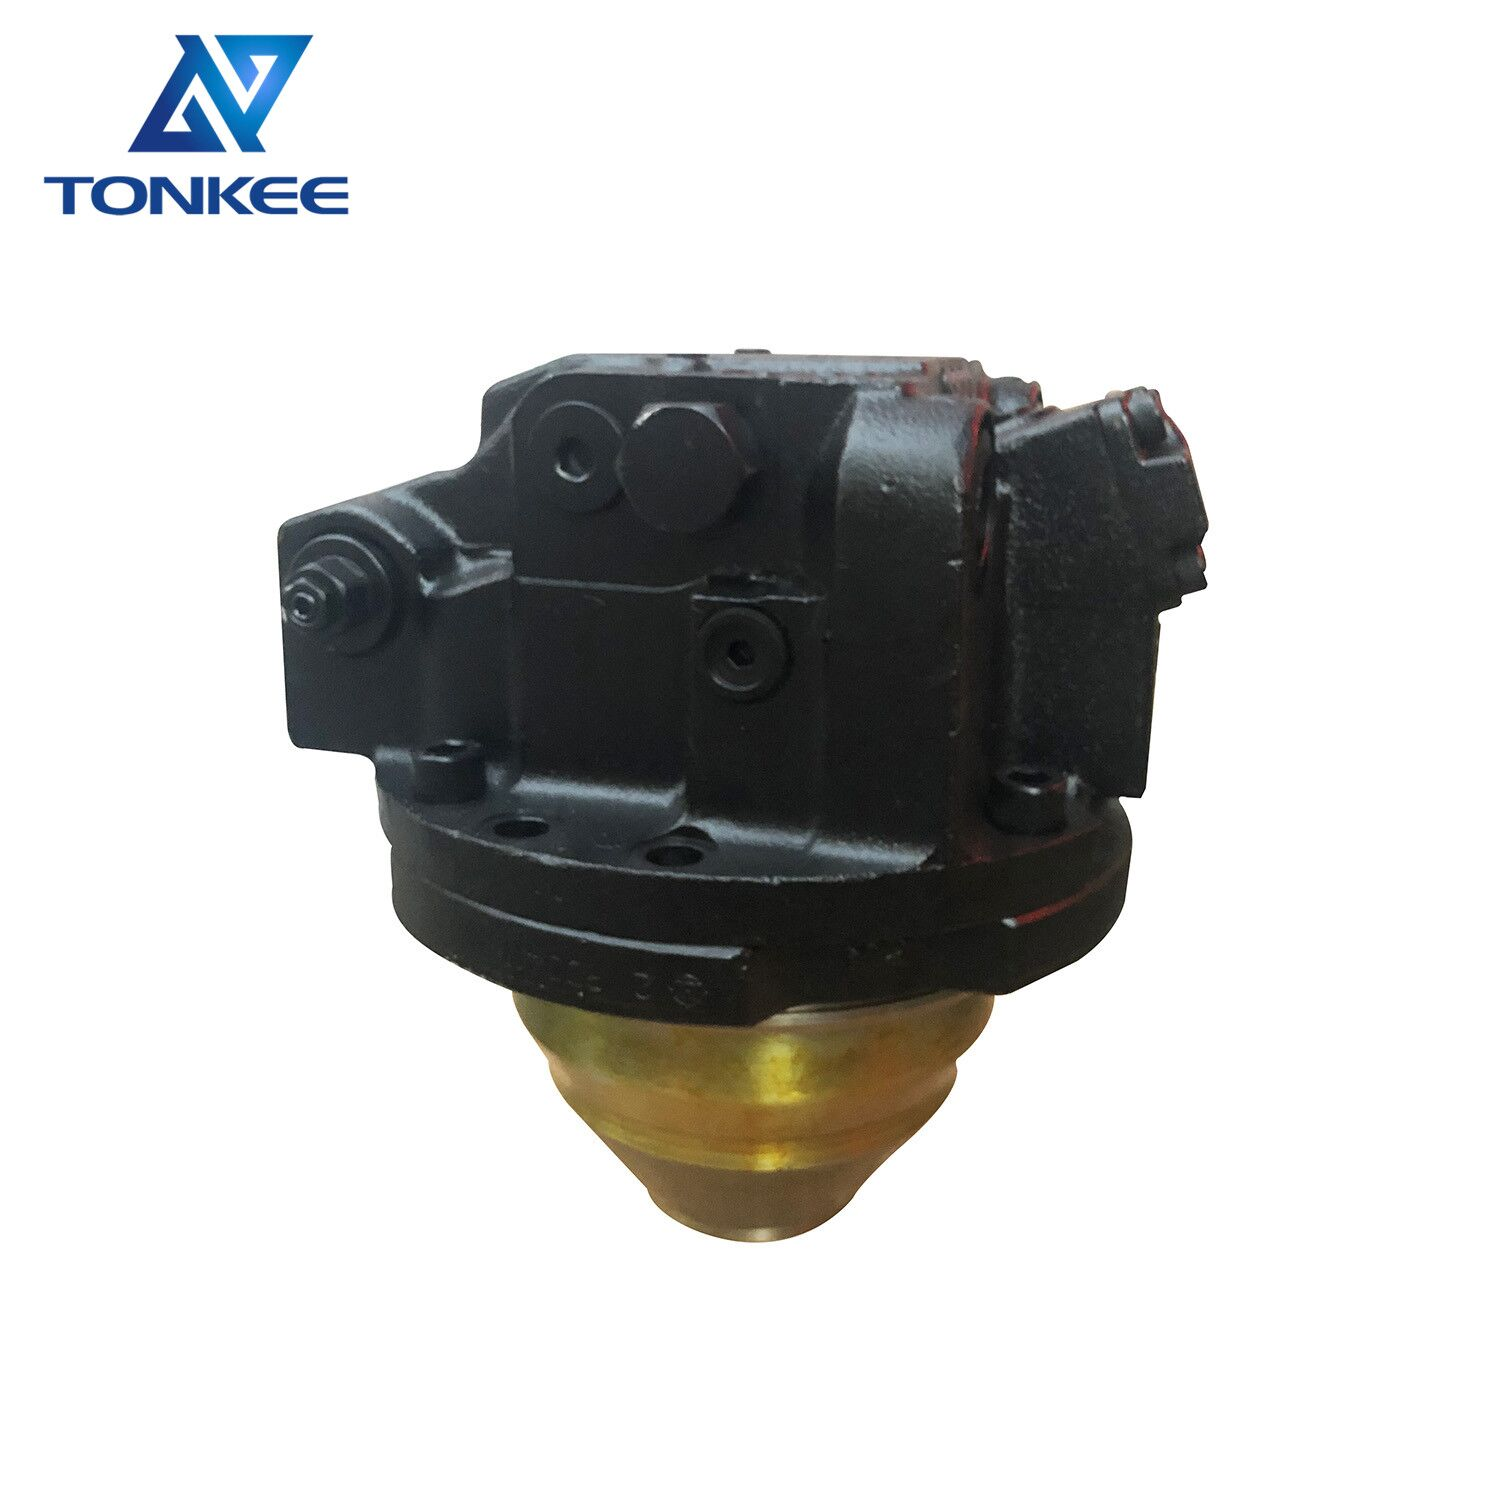 rebuild new 9135325 9135612 travel device EX300-3 EX300-3C EX310H-3C HMGF49AA HMGF57LA travel motor without gearbox suitable for HITACHI excavator